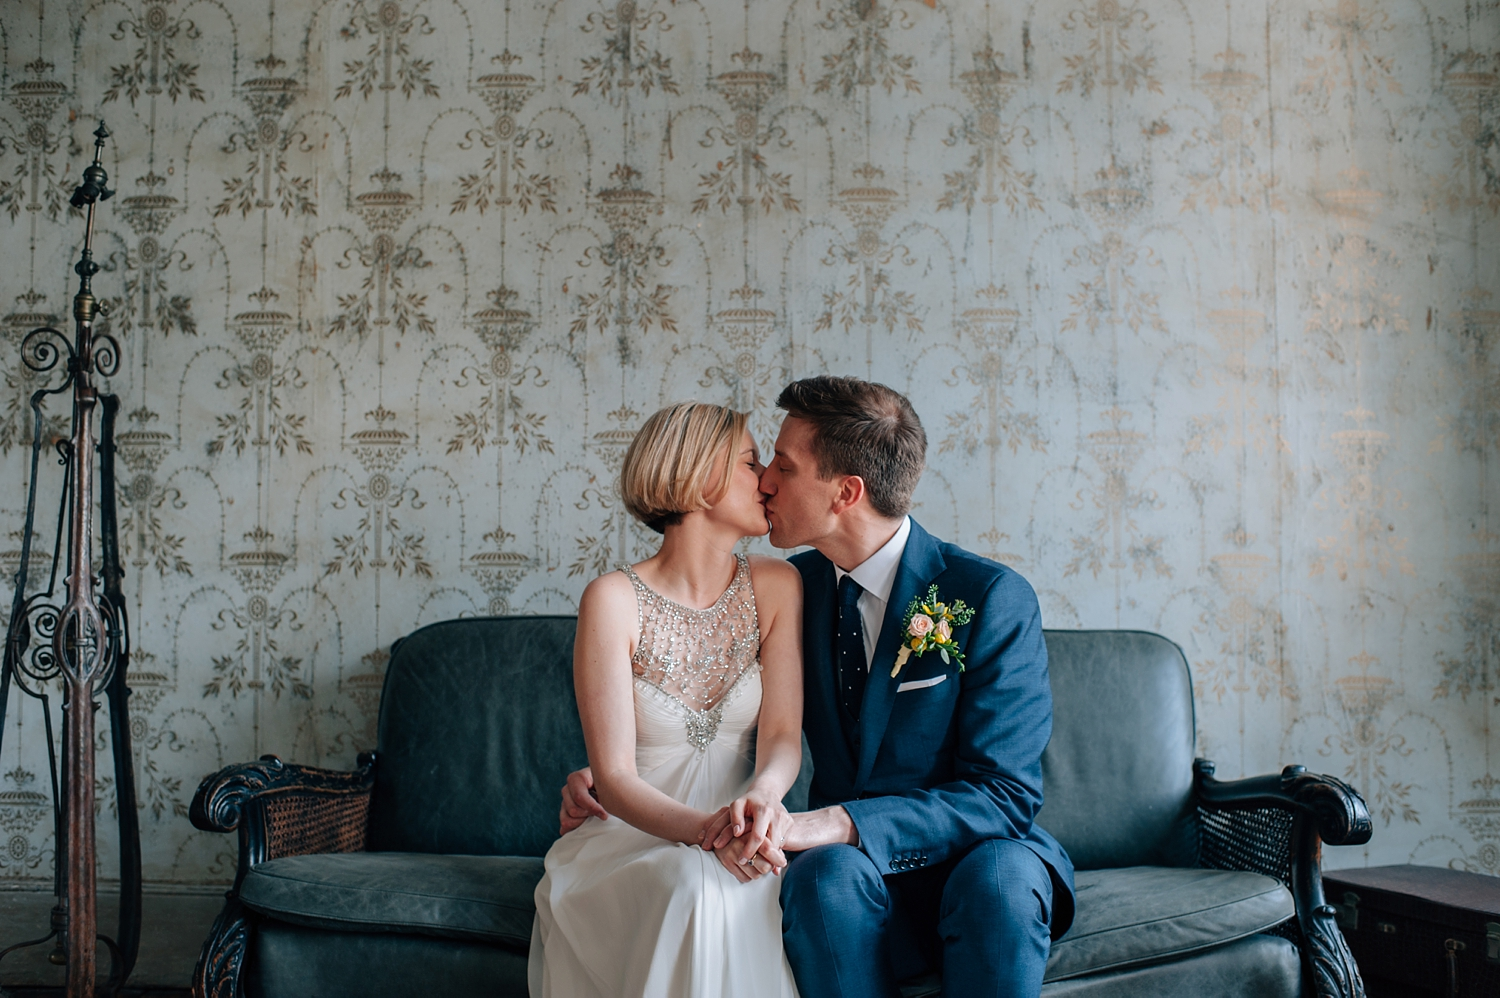 0114-lisa-devine-alternative-wedding-photography-london-hackney-dalston-london-photography-townhall-hotel.JPG